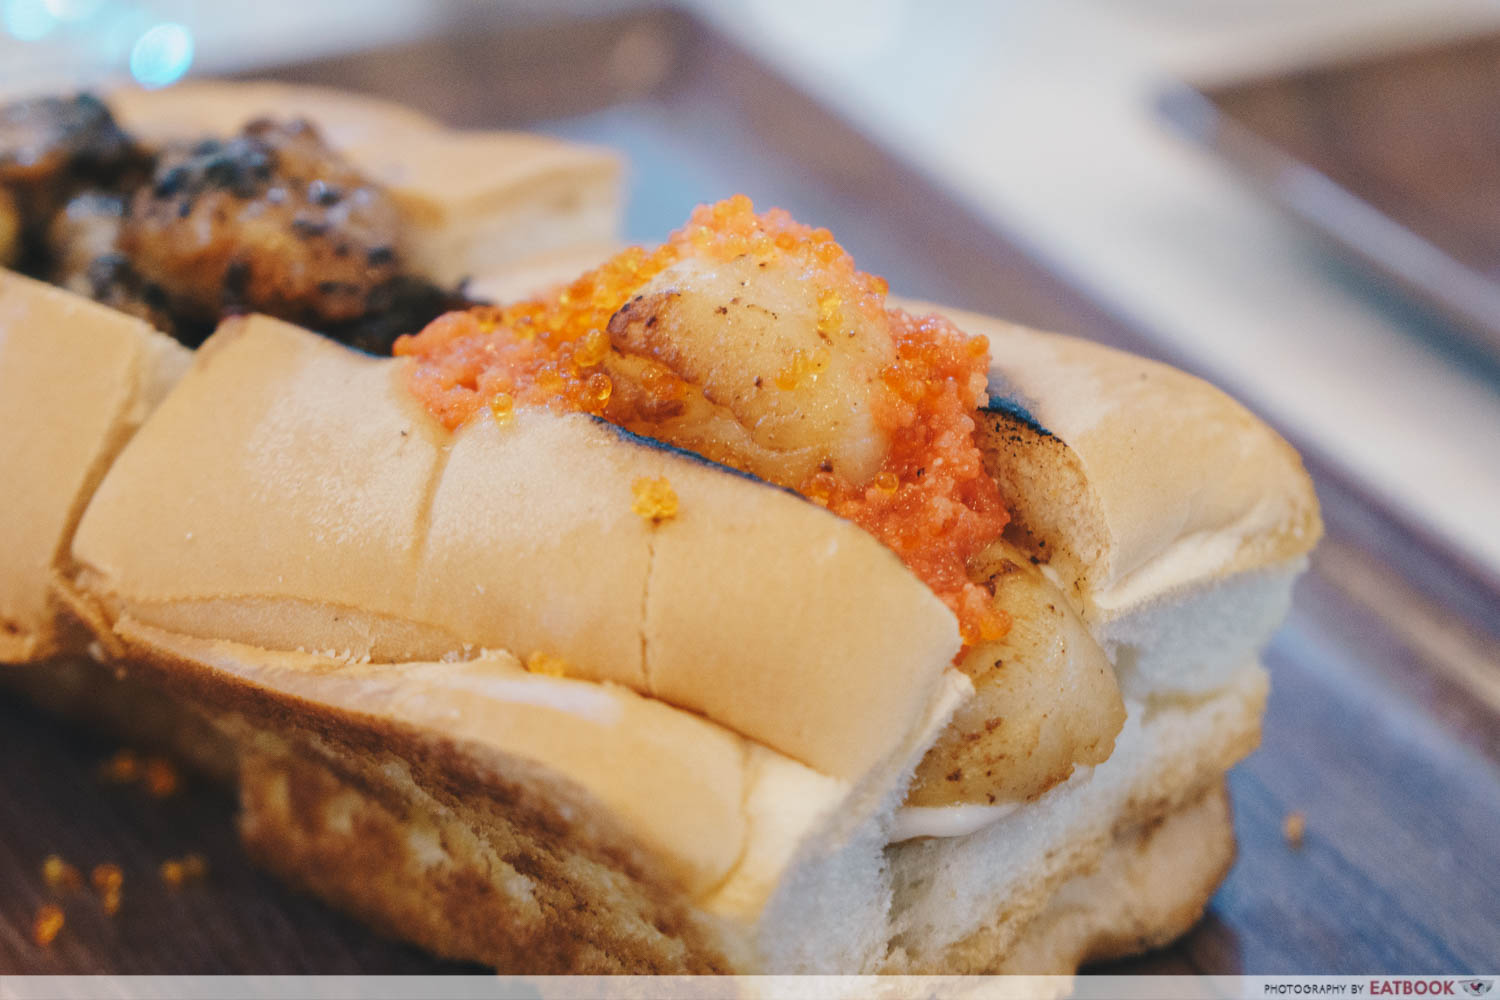 Lobsters & Ice Cream V2.0 - scallop mentaiko roll